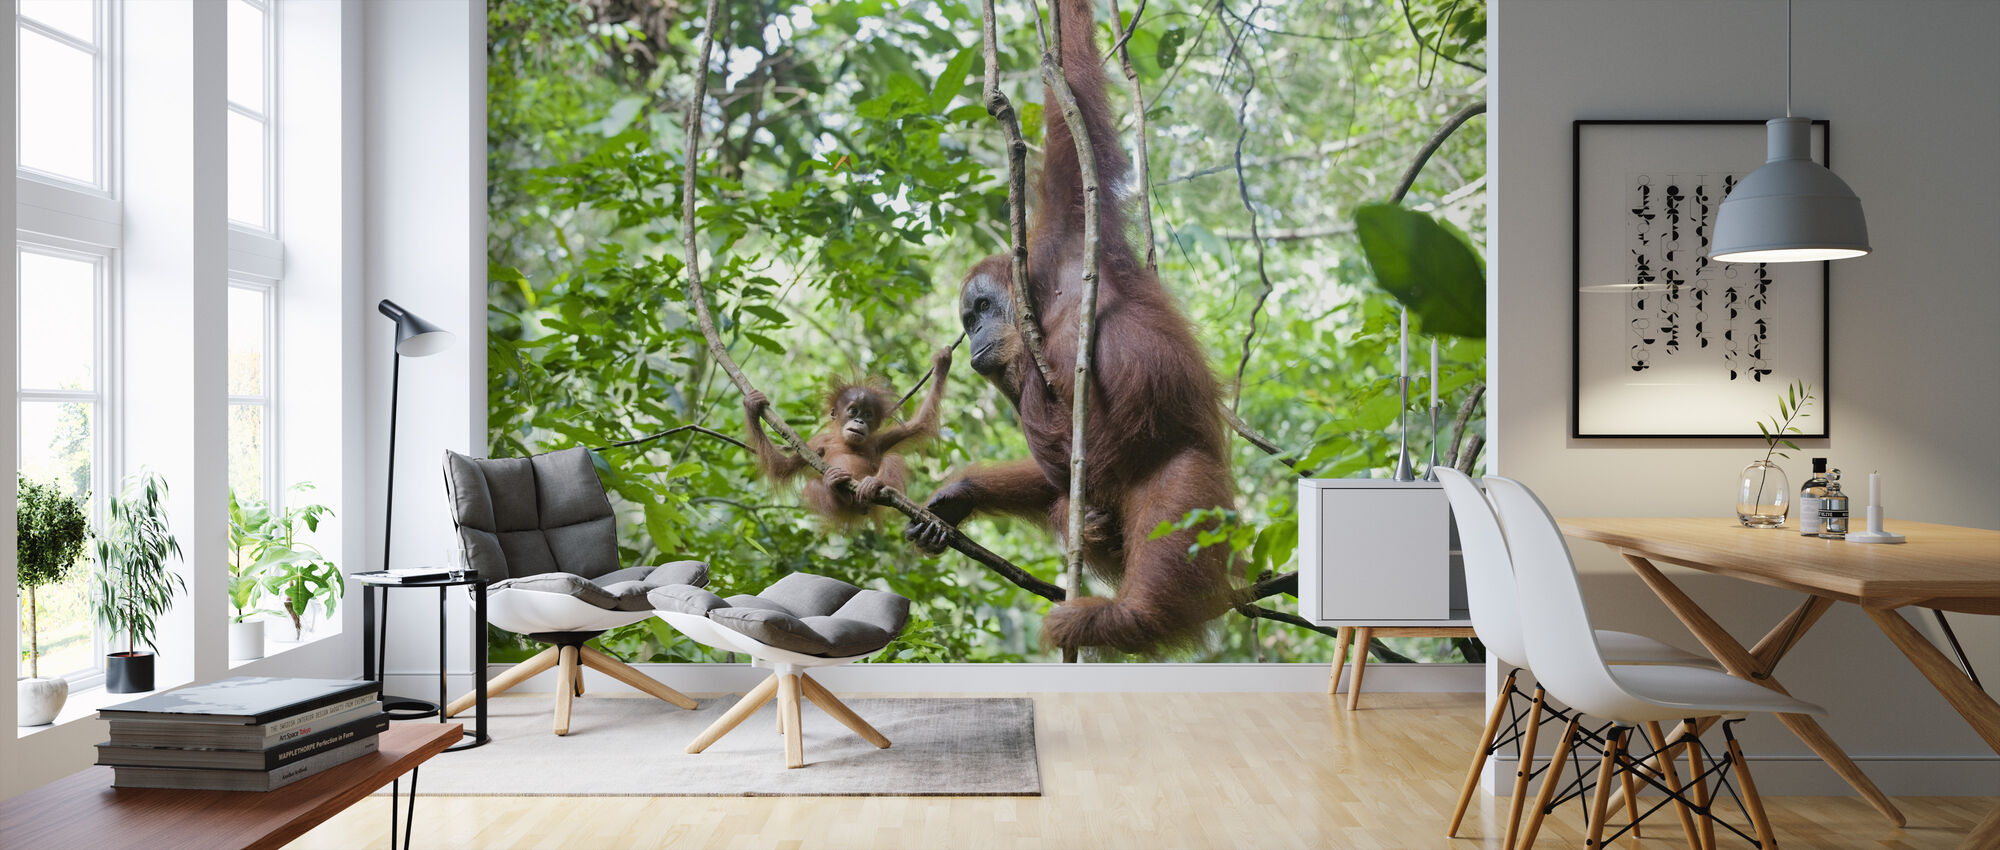 Mother and Baby Orangutan - Wallpaper - Living Room